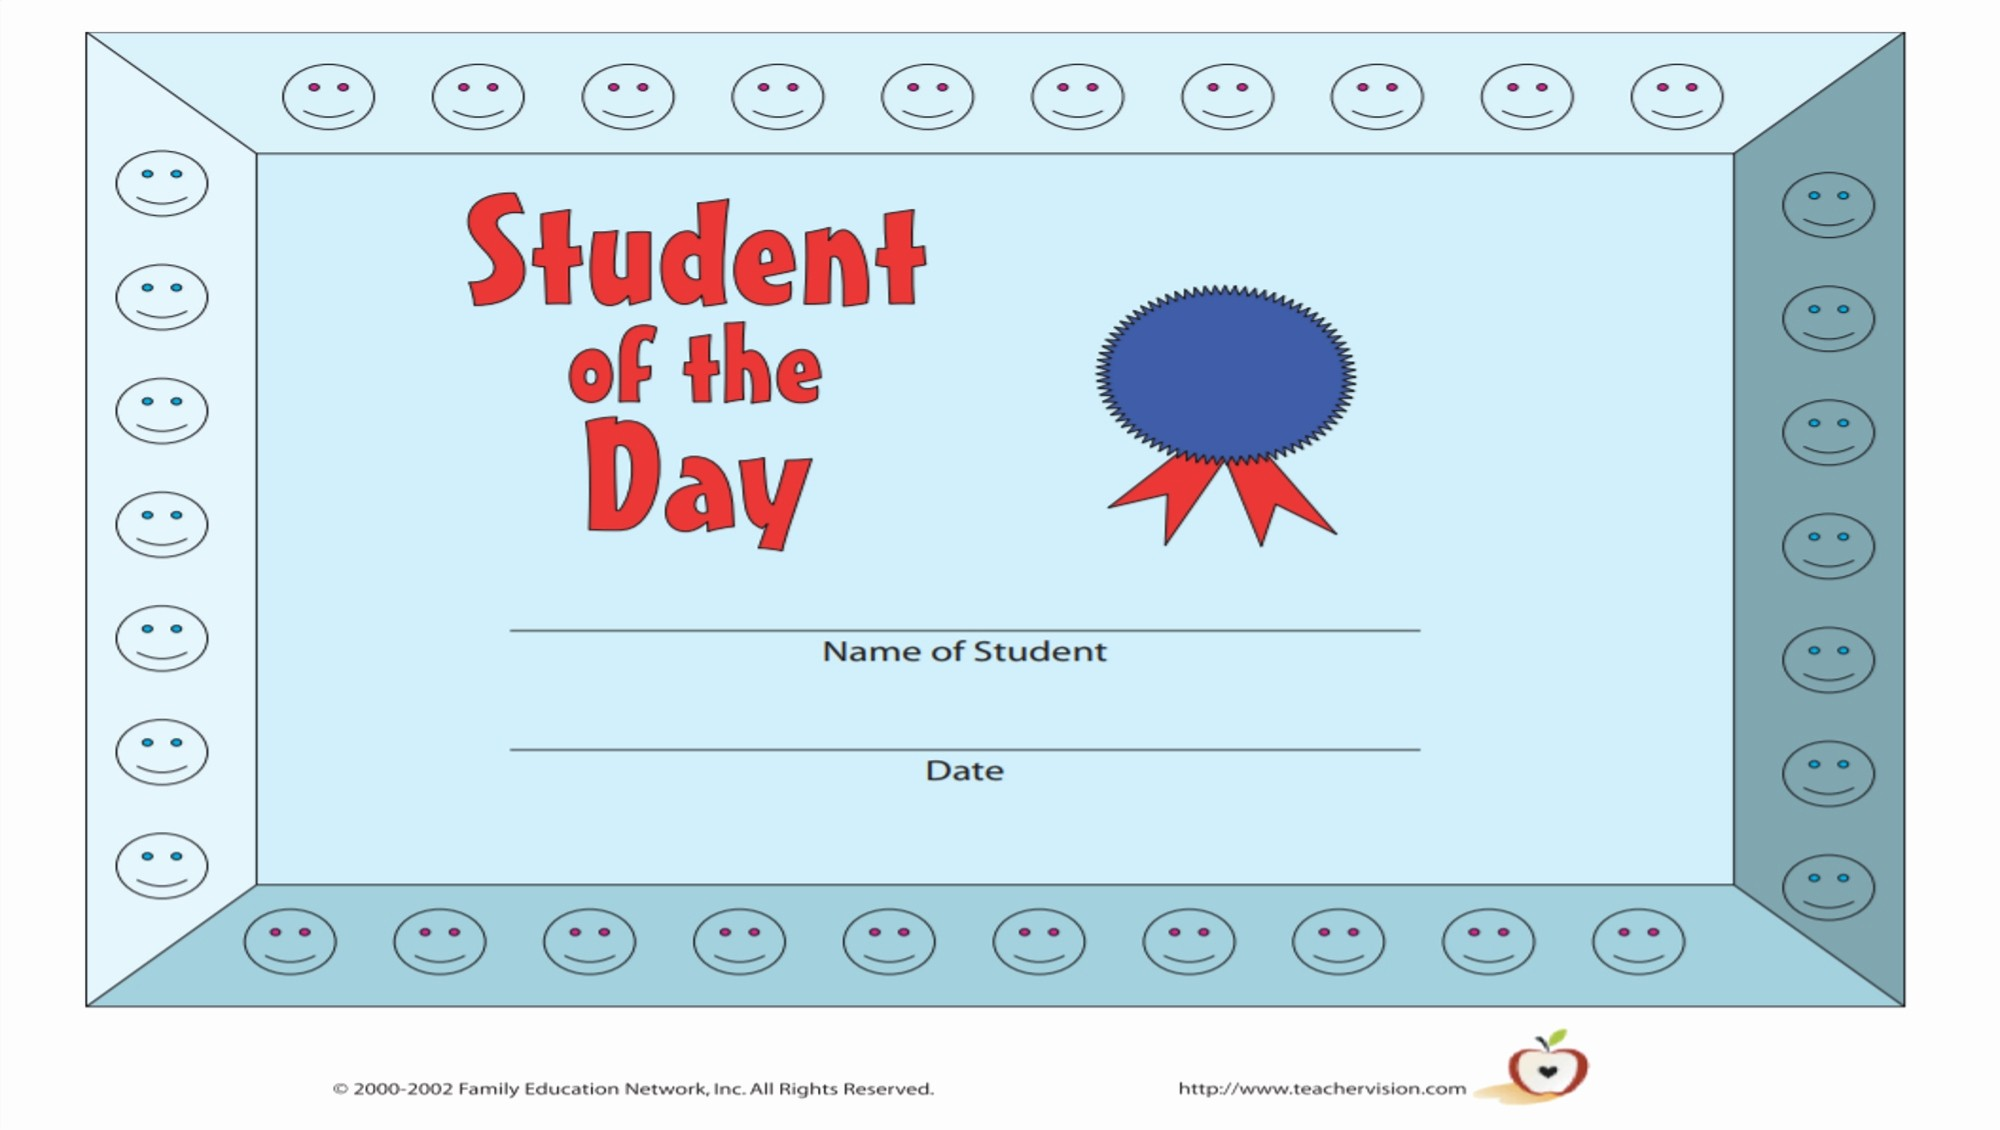 Student Of the Day Certificate Beautiful Printable Awards for Students Grades K 12 Teachervision